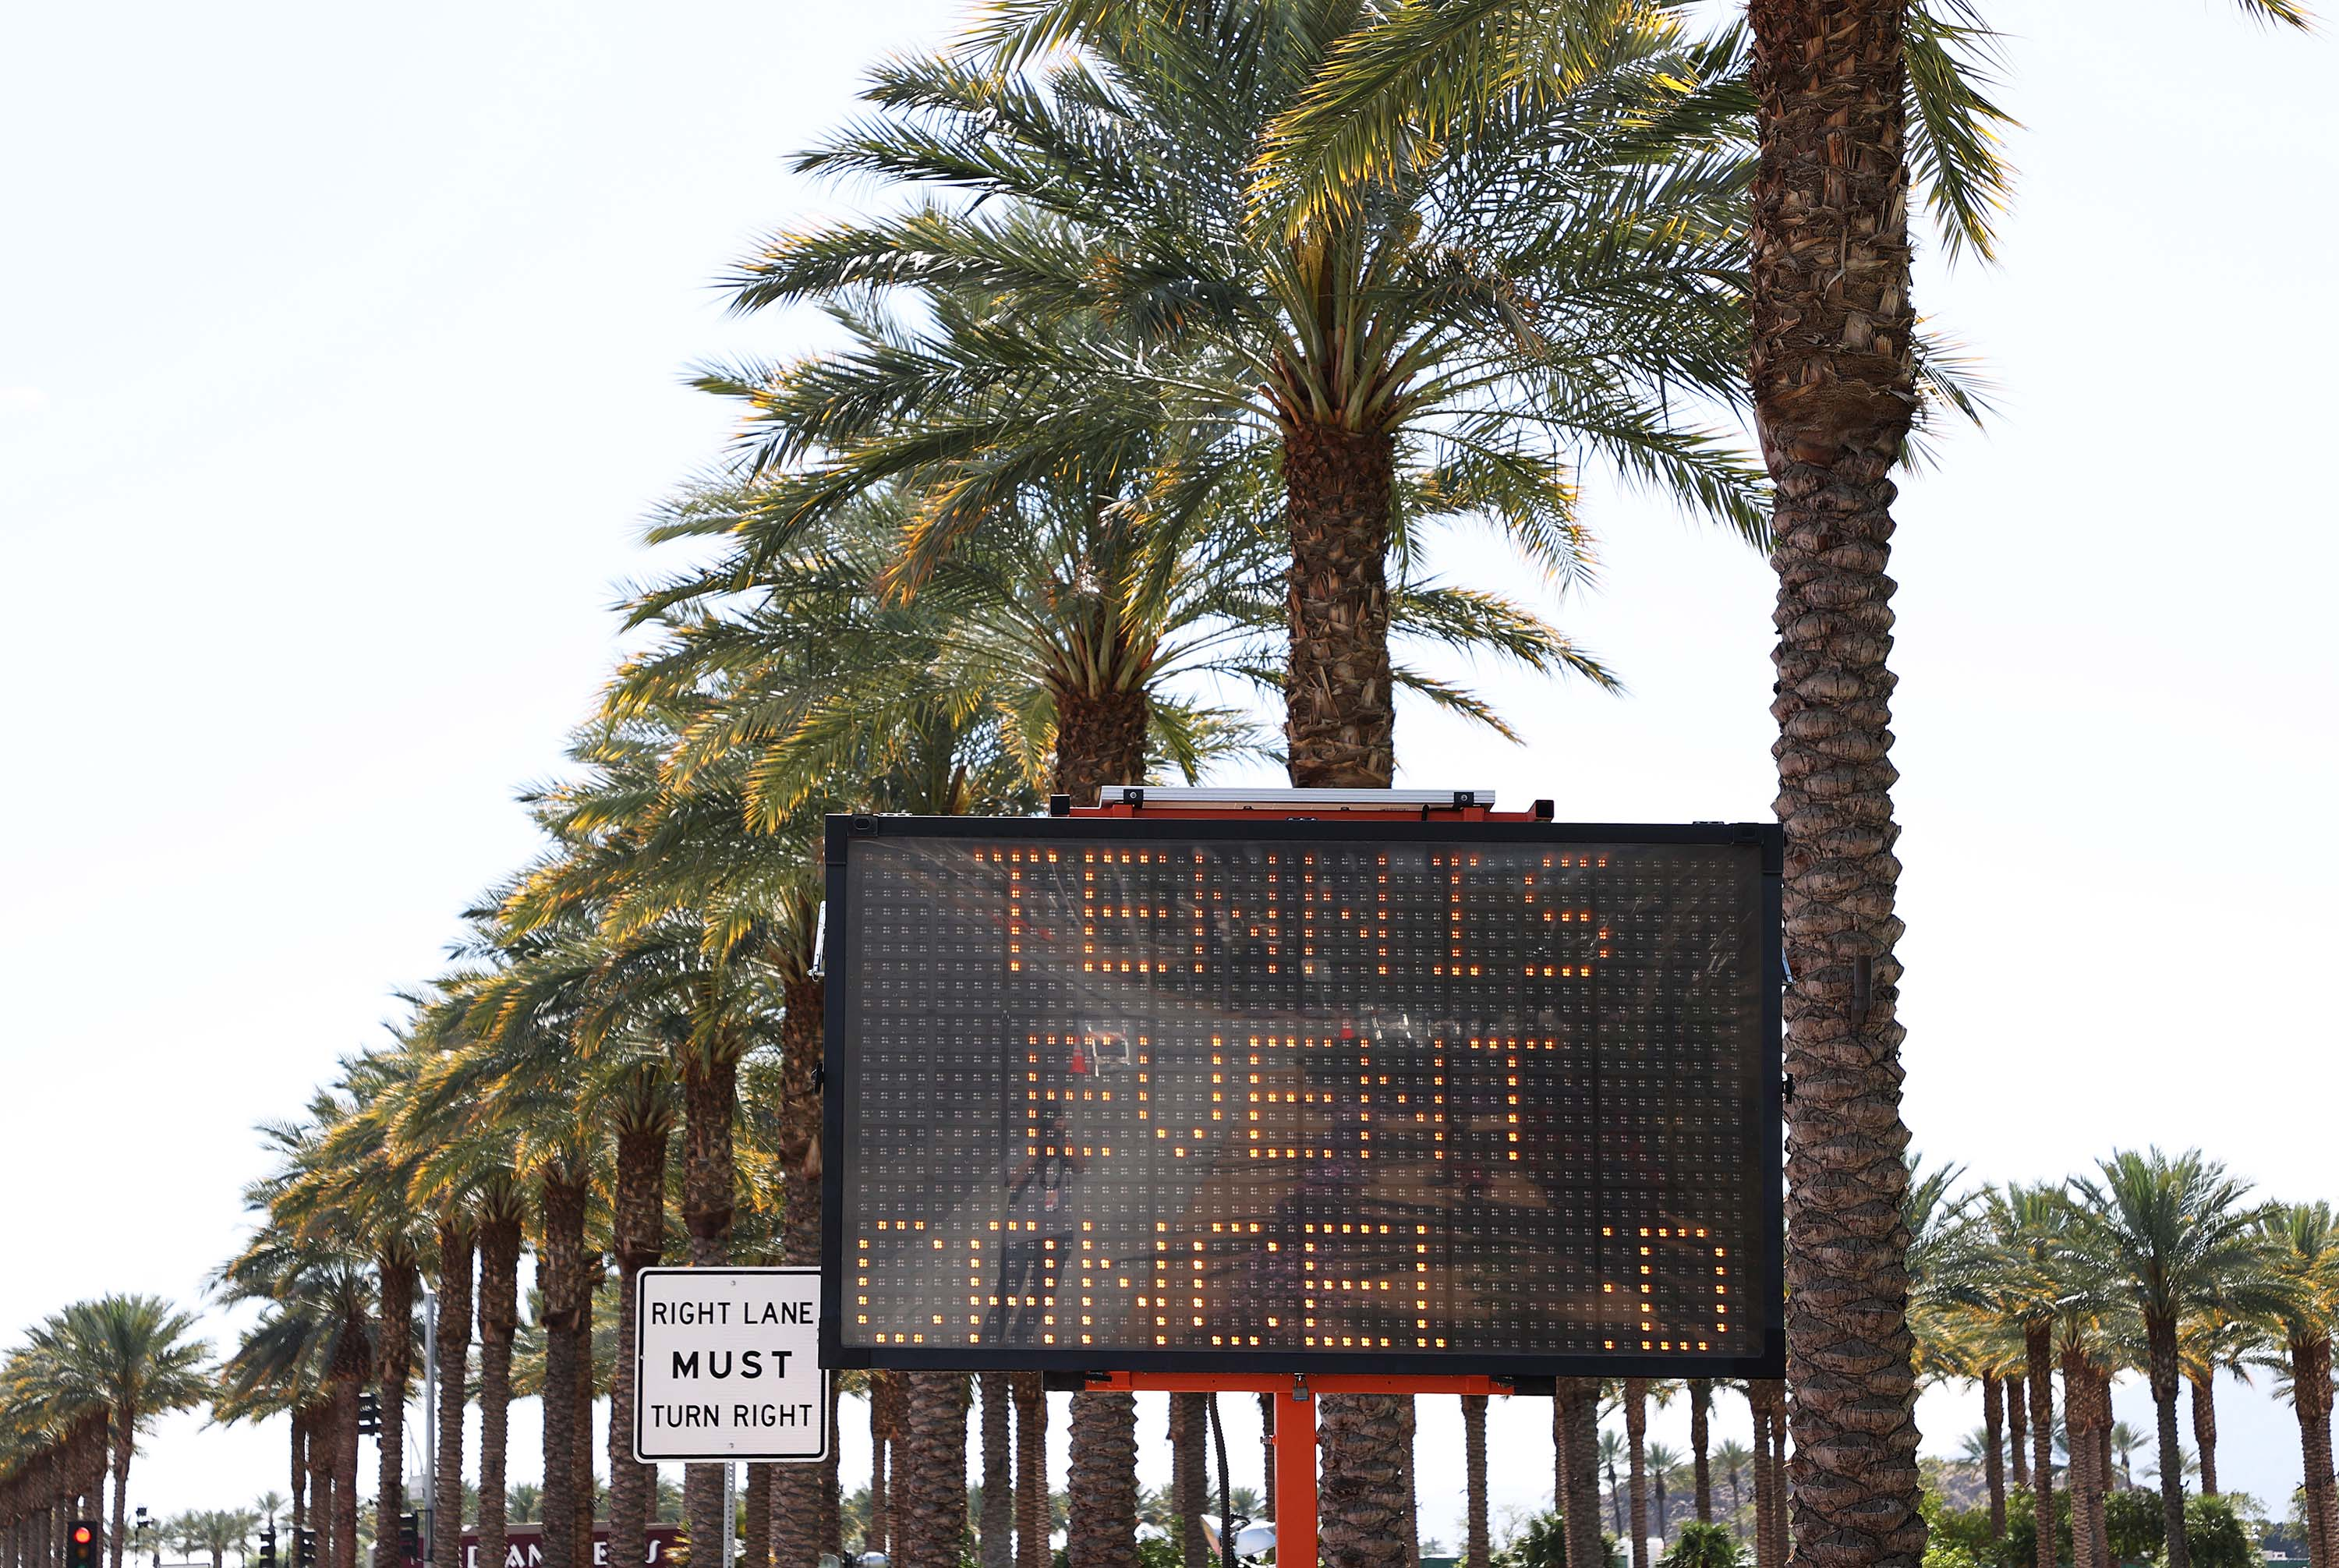 A sign flashes outside the Indian Wells Tennis Garden on March 9, in Indian Wells, California. The BNP Paribas Open was cancelled by the Riverside County Public Health Department, as county officials declared a public health emergency when a case of coronavirus was confirmed in the area.